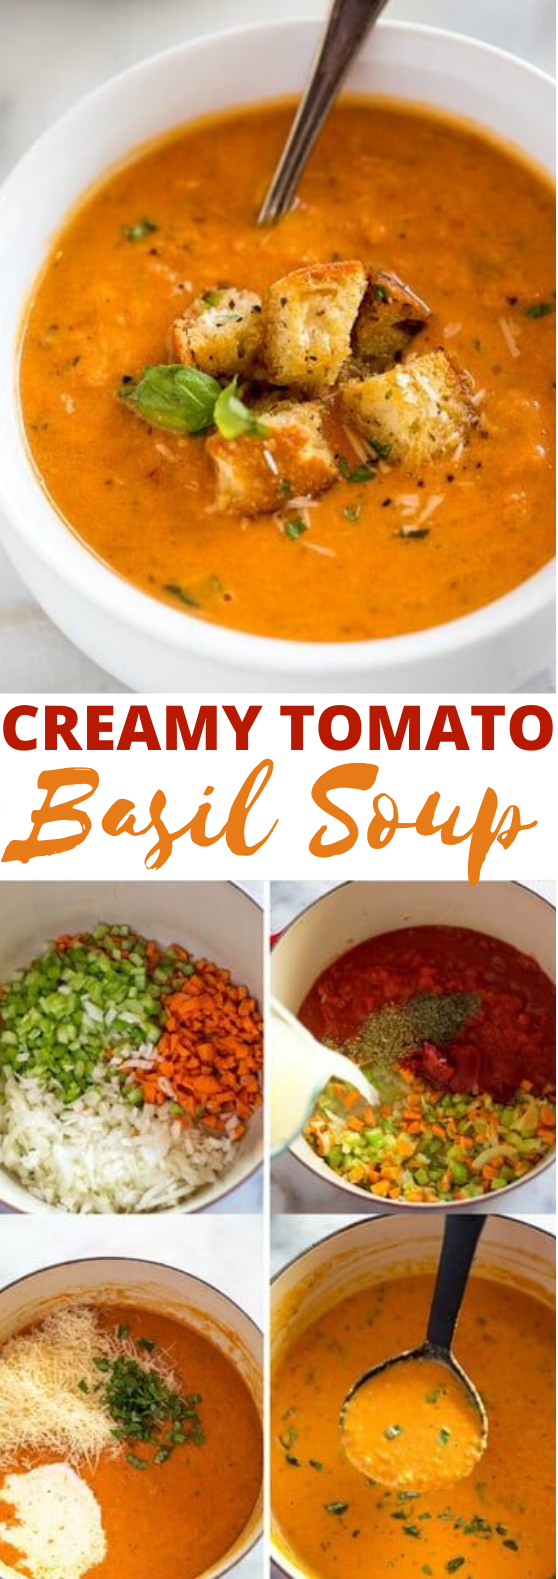 Creamy Tomato Basil Soup #dinner #soup #comfortfood #vegetarian #cooking